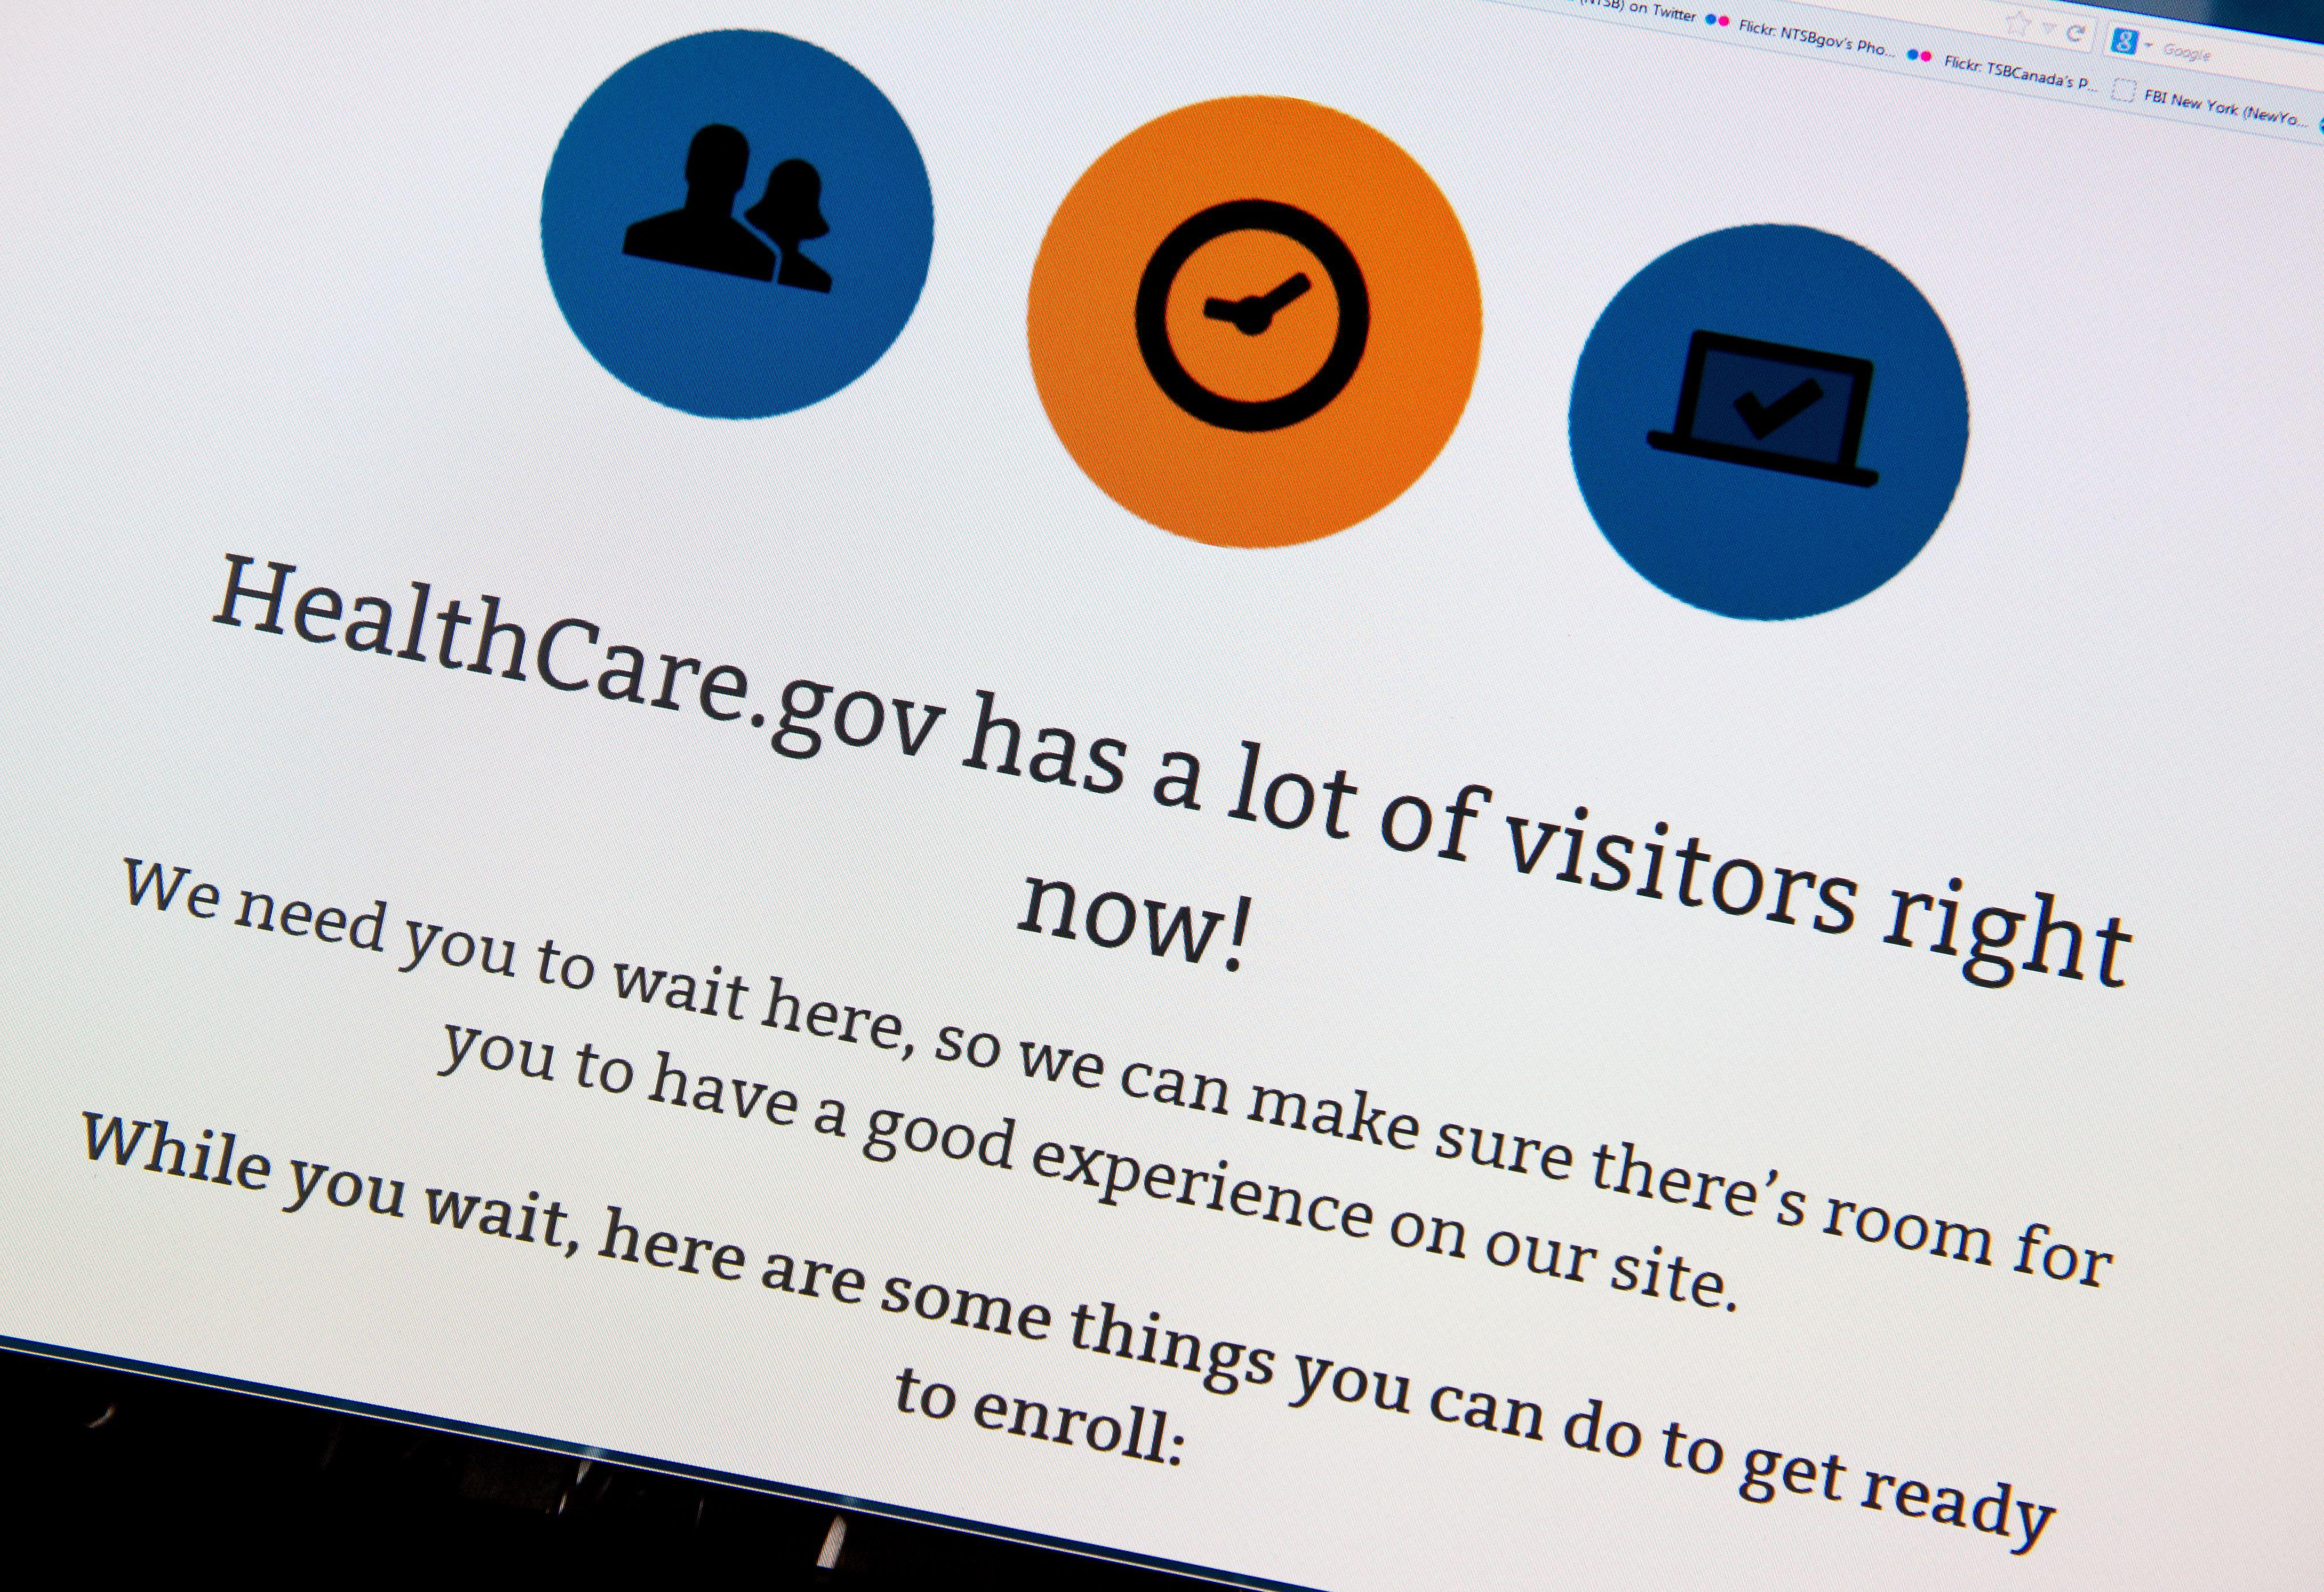 A waiting page on healthcare.gov